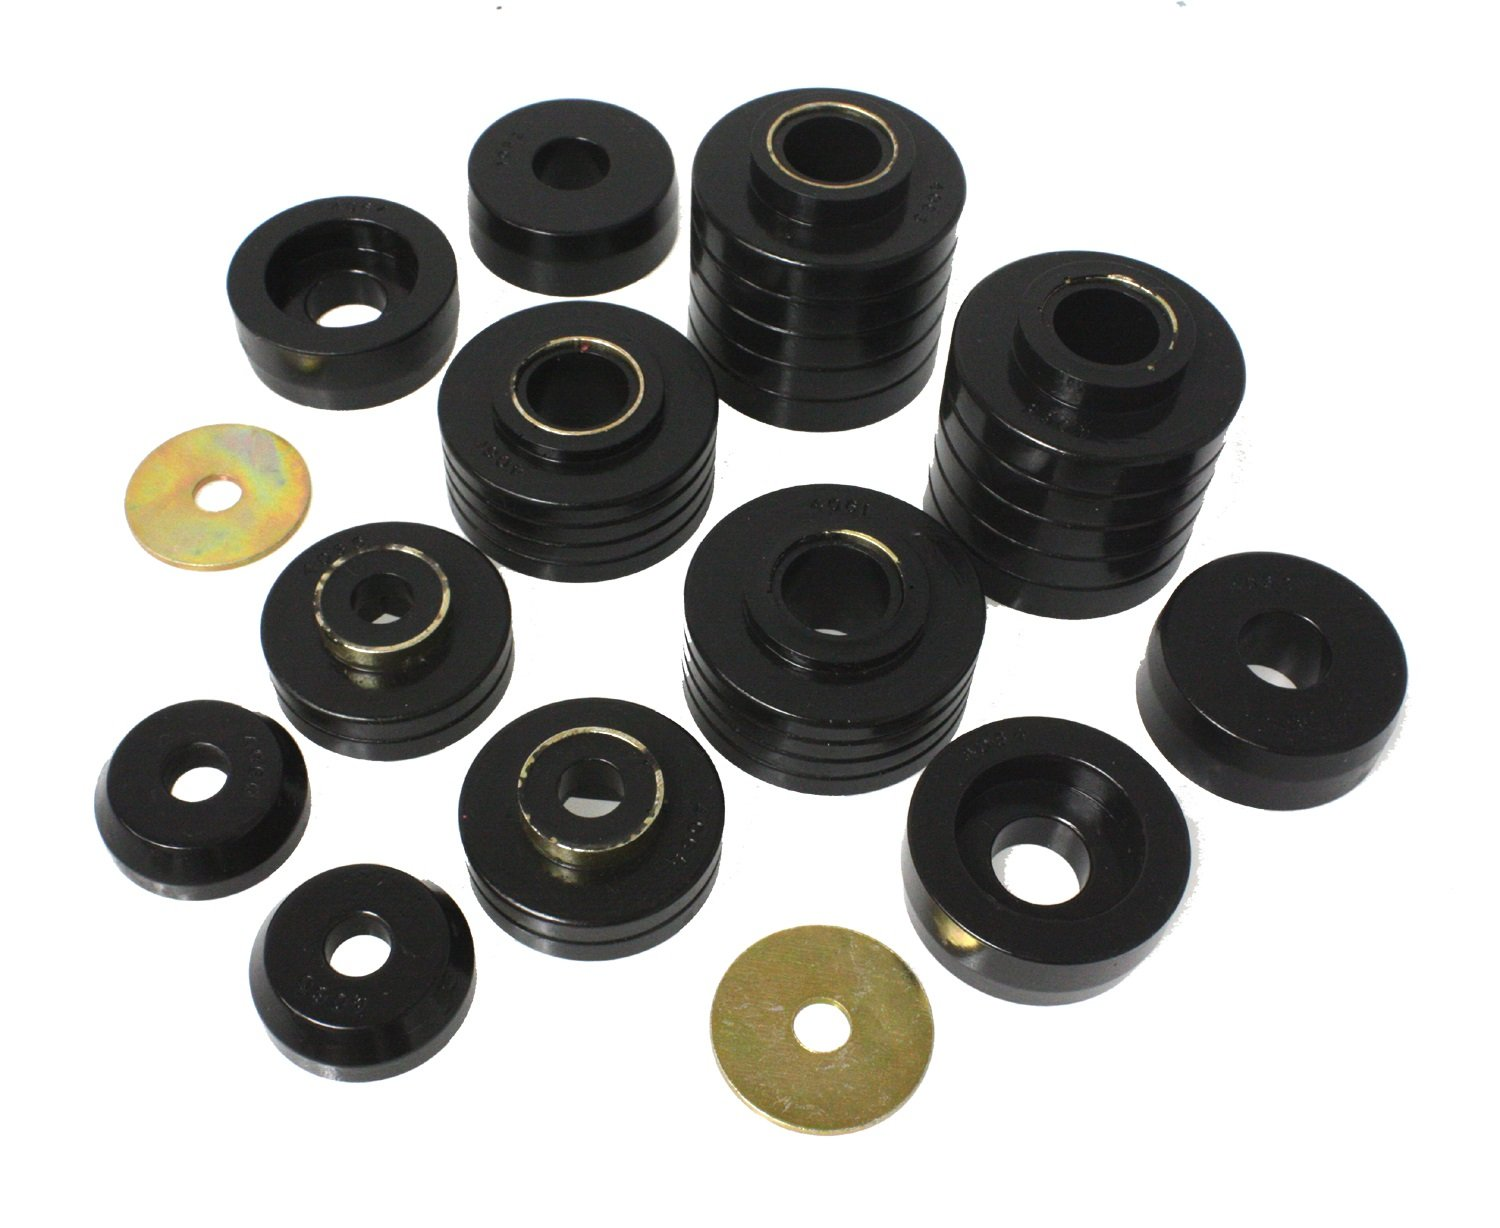 Energy Suspension 4.4107G Body Mounts for Ford Pickup